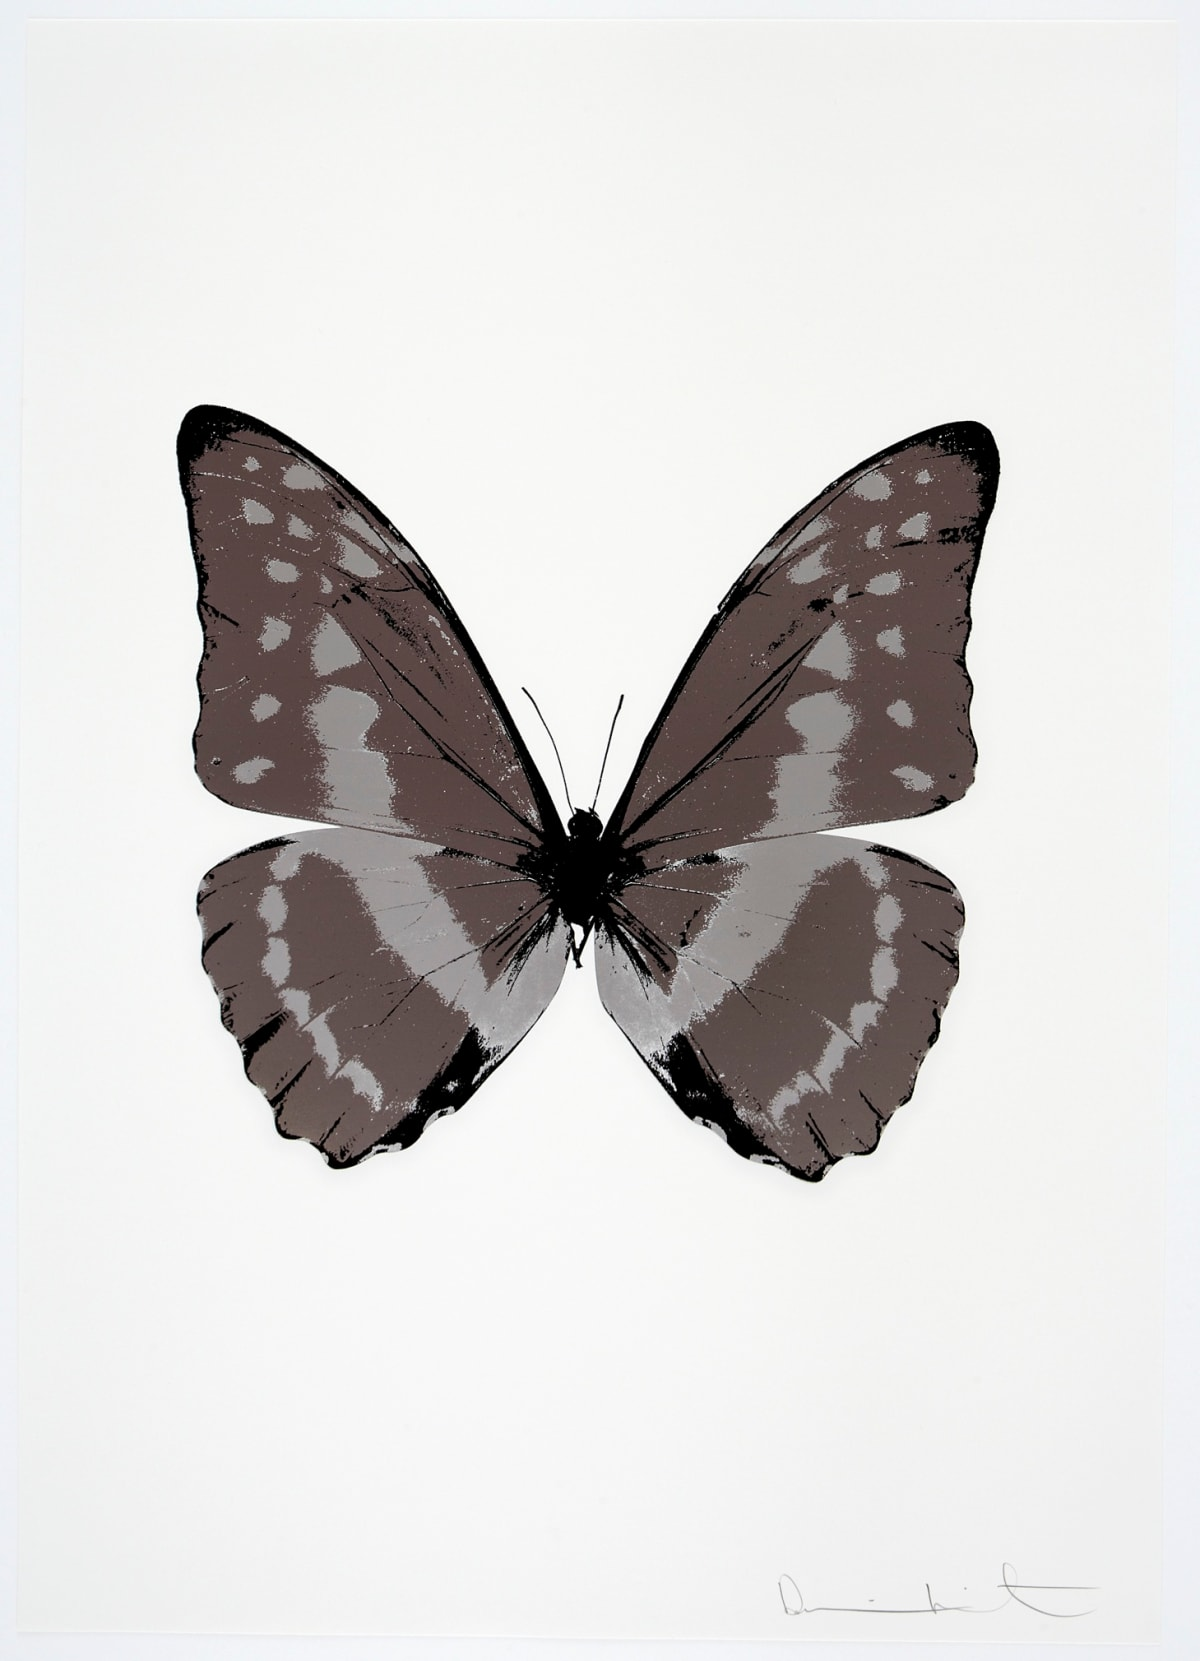 Damien Hirst The Souls III - Gunmetal/Silver Gloss/Raven Black, 2010 3 colour foil block on 300gsm Arches 88 archival paper. Signed and numbered. Published by Paul Stolper and Other Criteria 72 x 51cm OC7959 / 660-62 Edition of 15